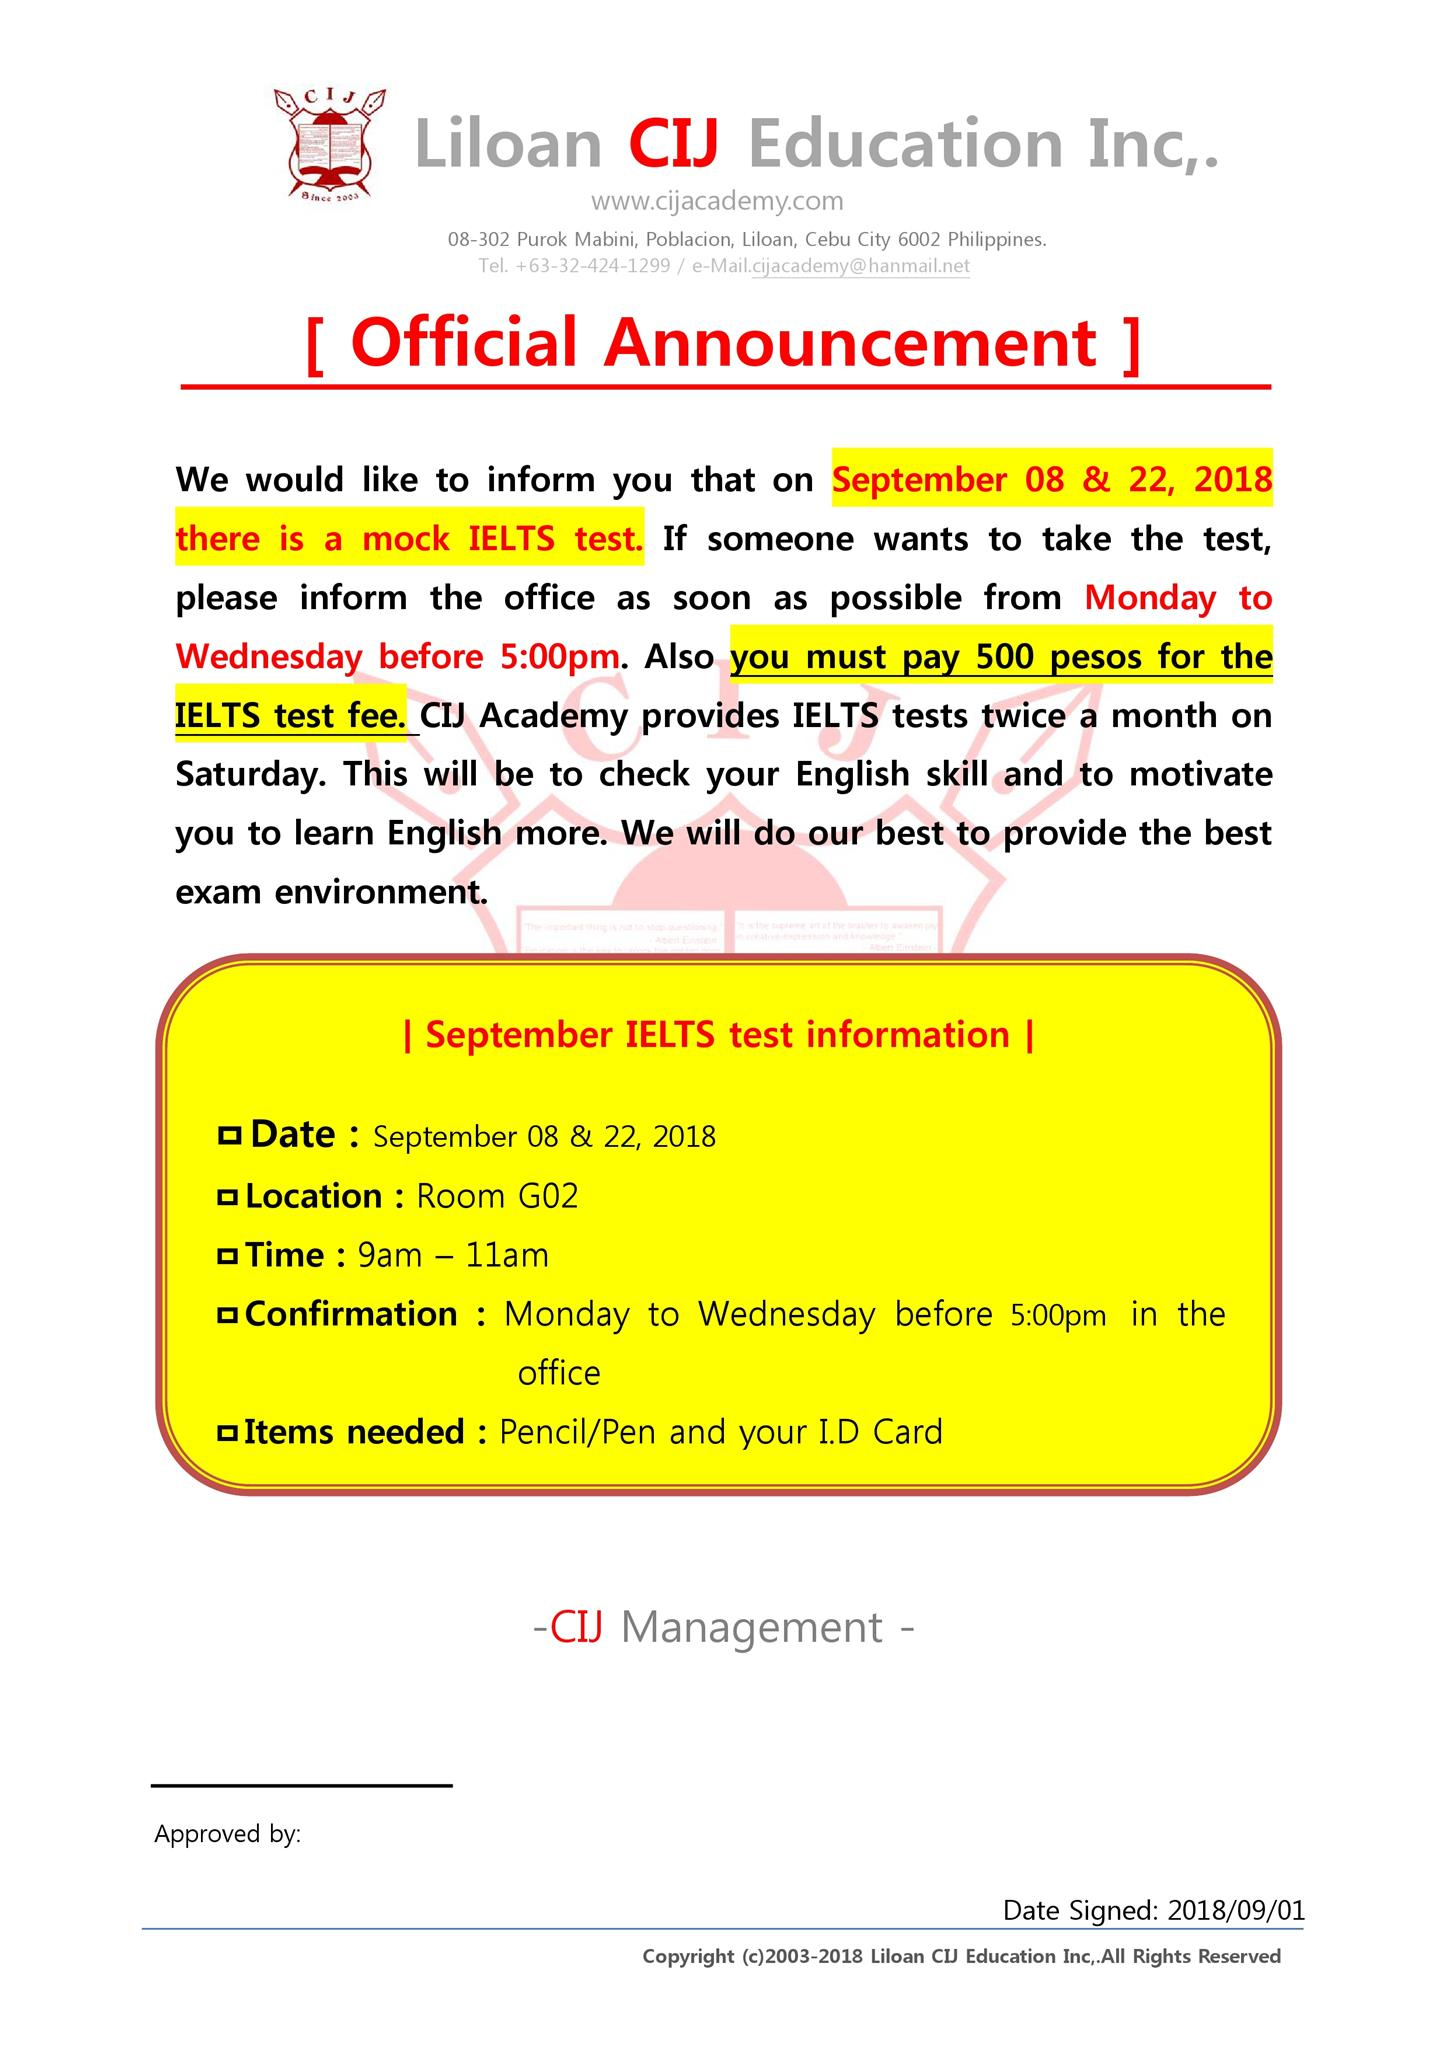 mock ielts schedule for september in sparta campus cij academy